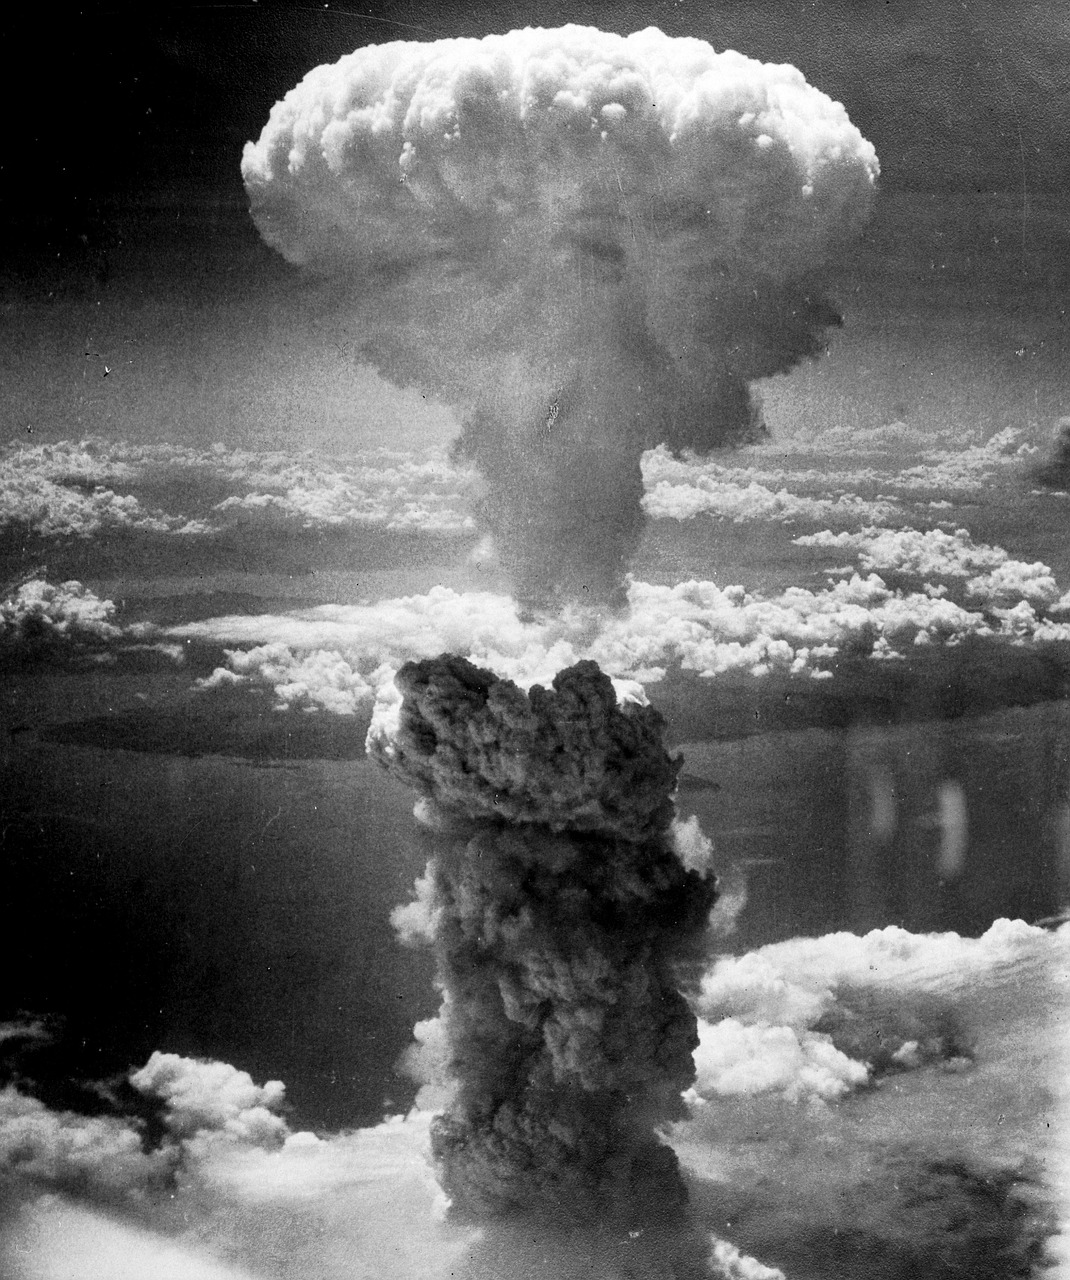 Atomic Bomb sending soot into the atmosphere to cause nuclear winter